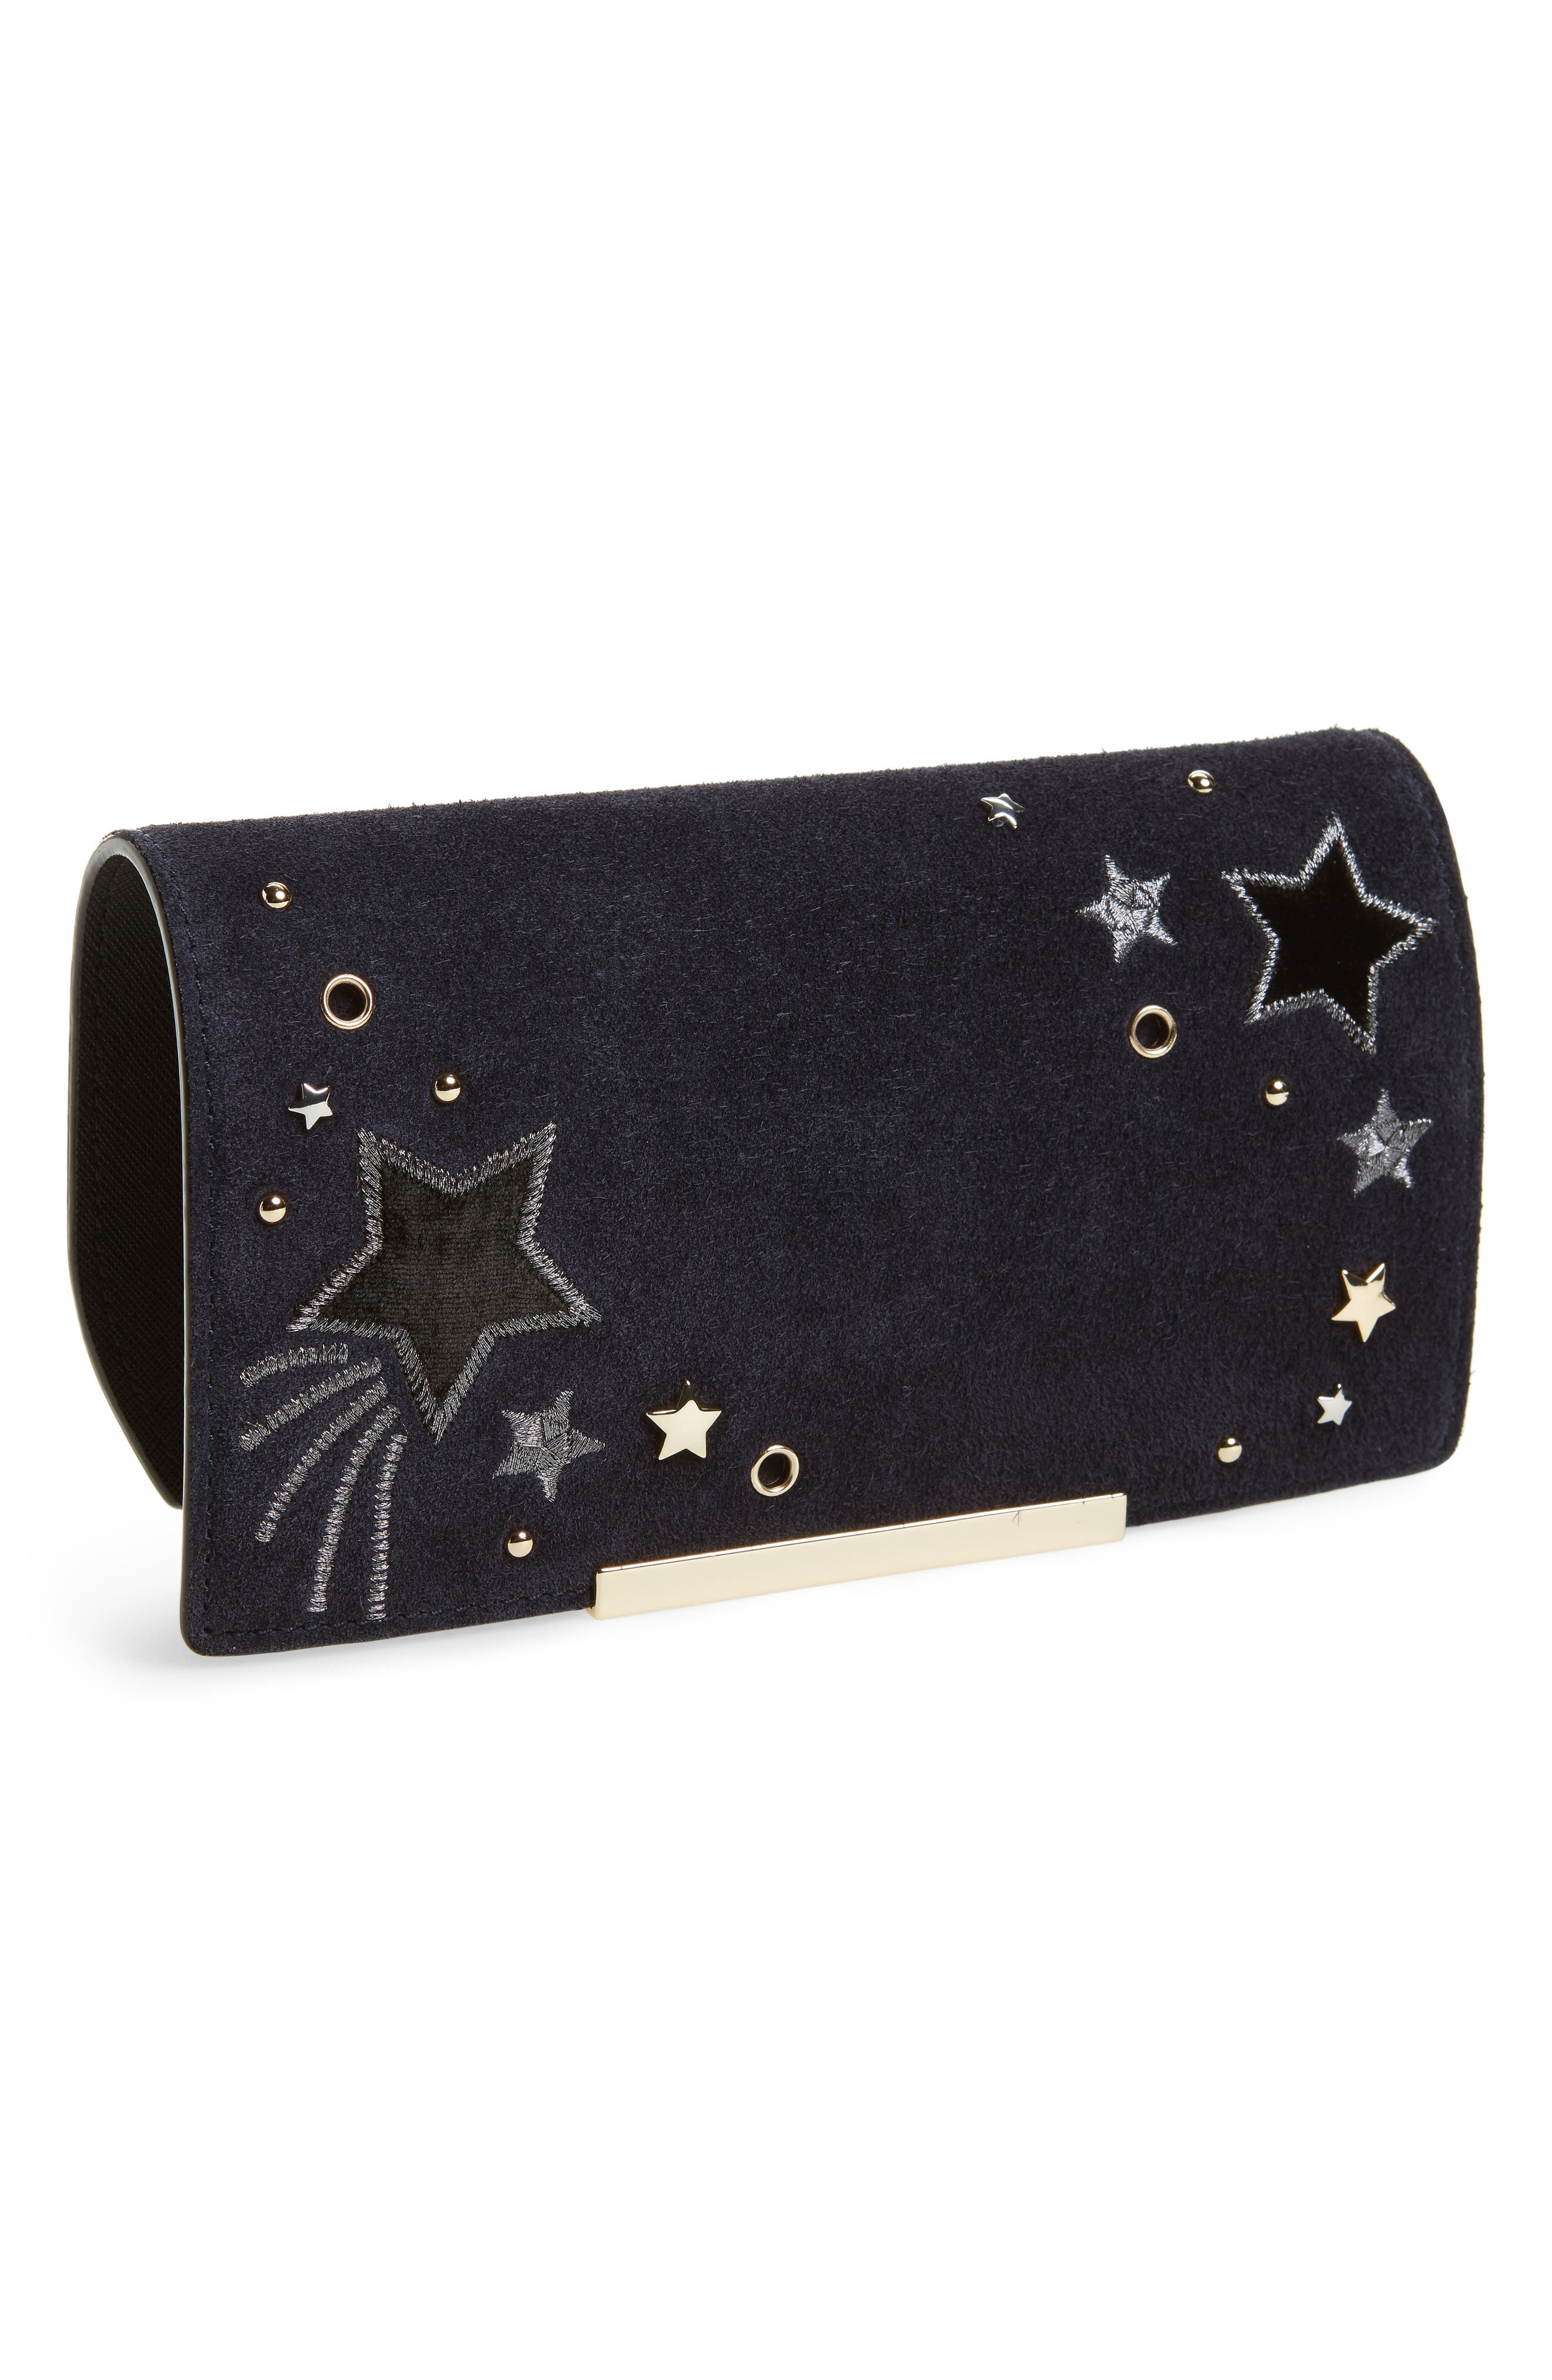 make it mine star embellished snap-on accent flap,                         Main,                         color,